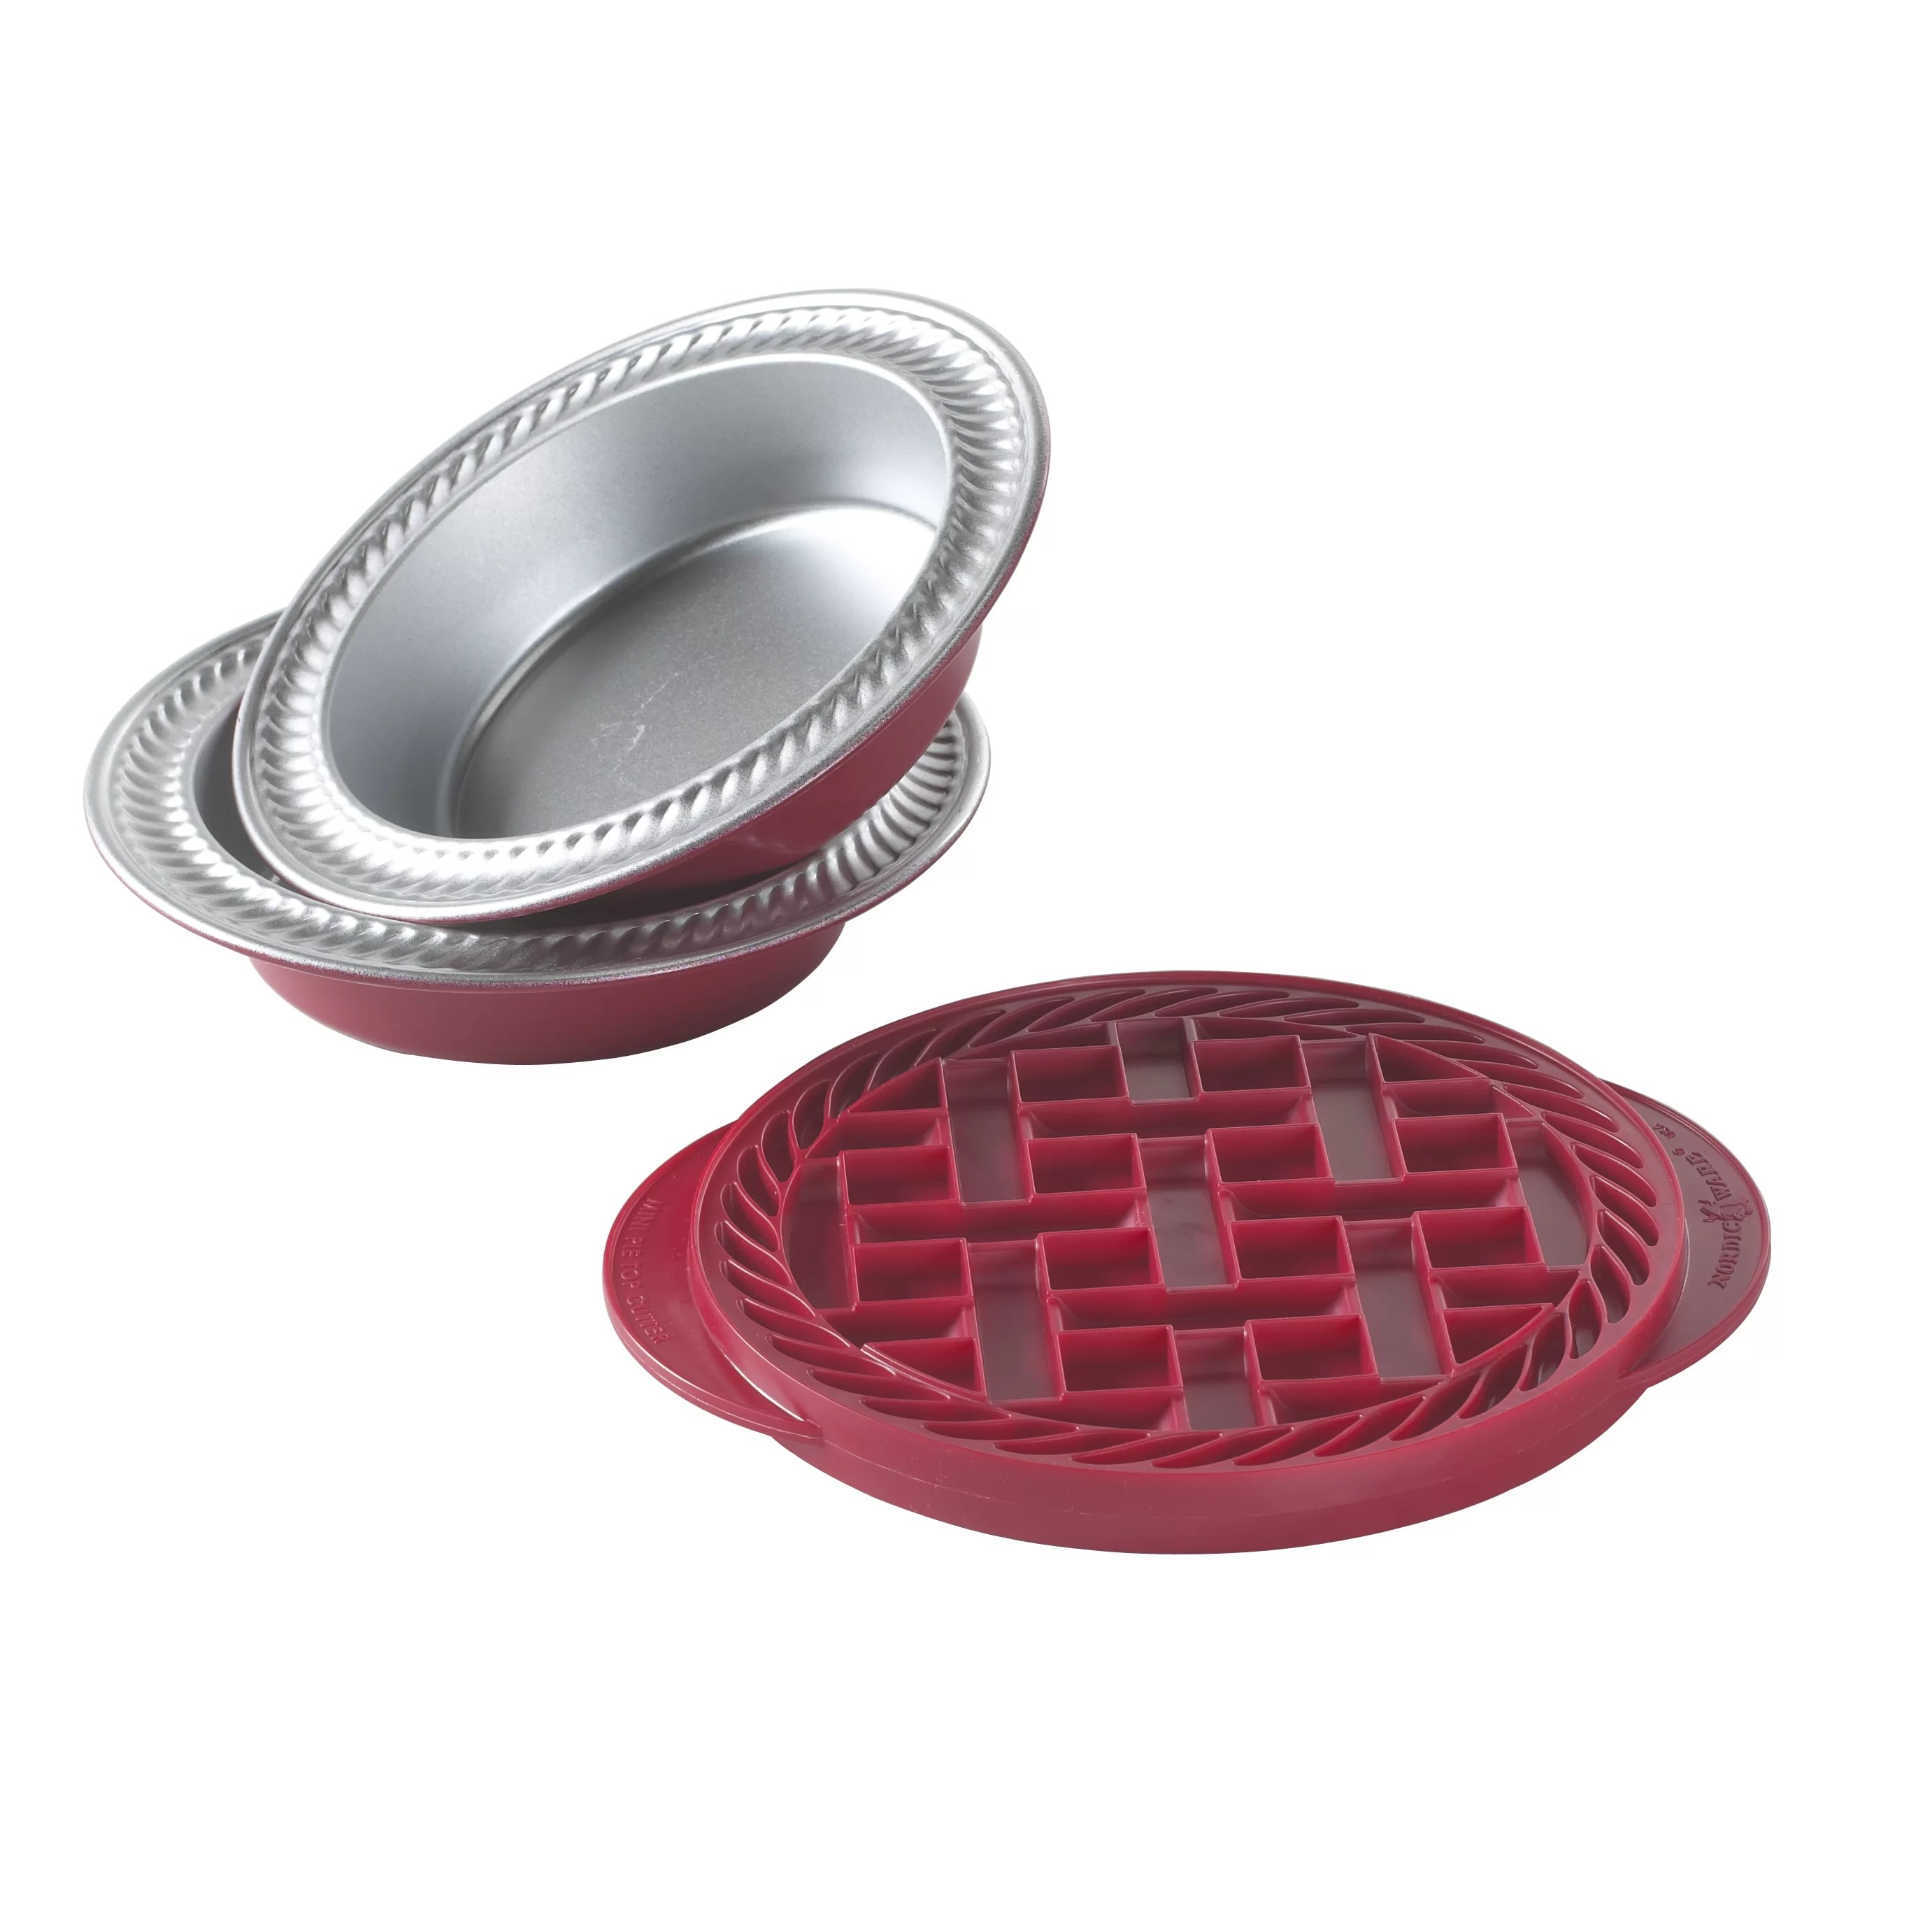 Nordic Ware Mini 2 Piece Bakeware Set Amp Reviews Wayfair